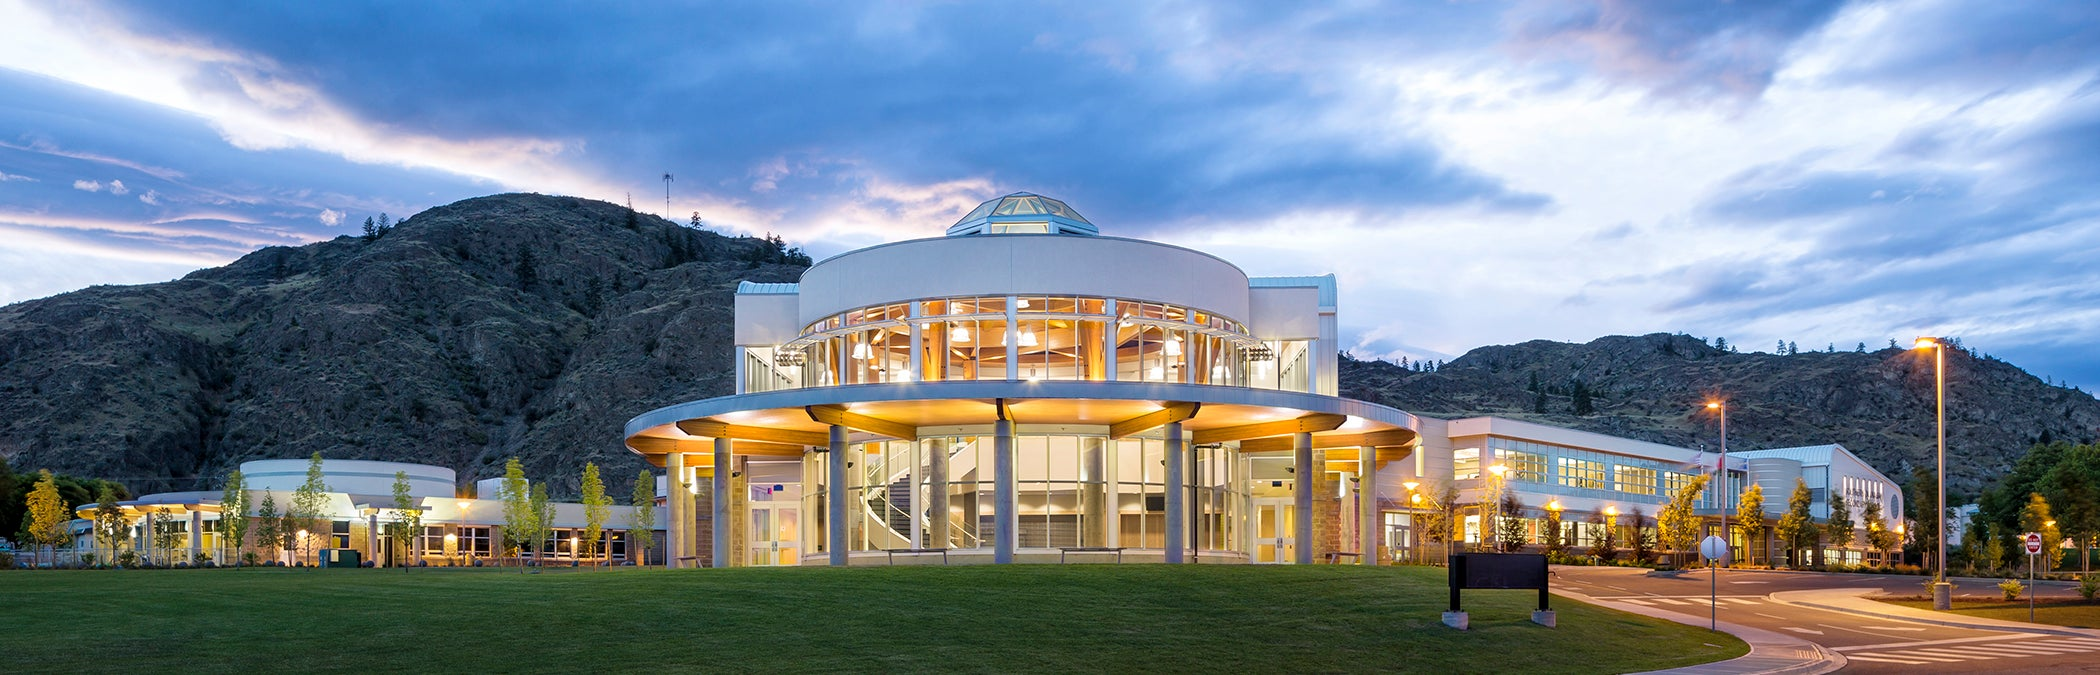 Southern Okanagan Secondary School Expansion Hdr